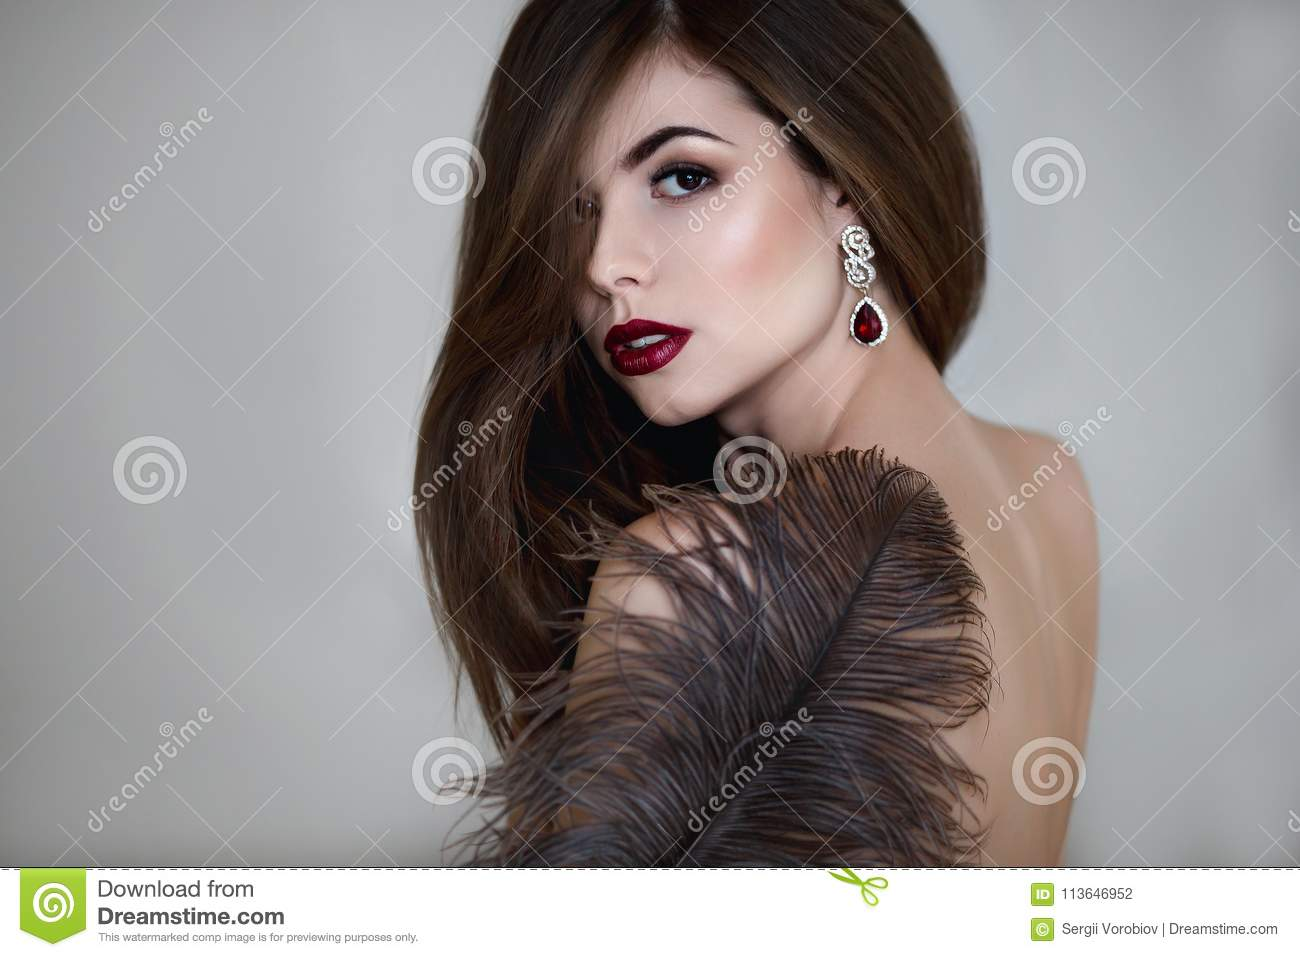 Beautiful young woman. Dramatic indoor portrait of sensual brunette female with long hair. Sad and serious girl.